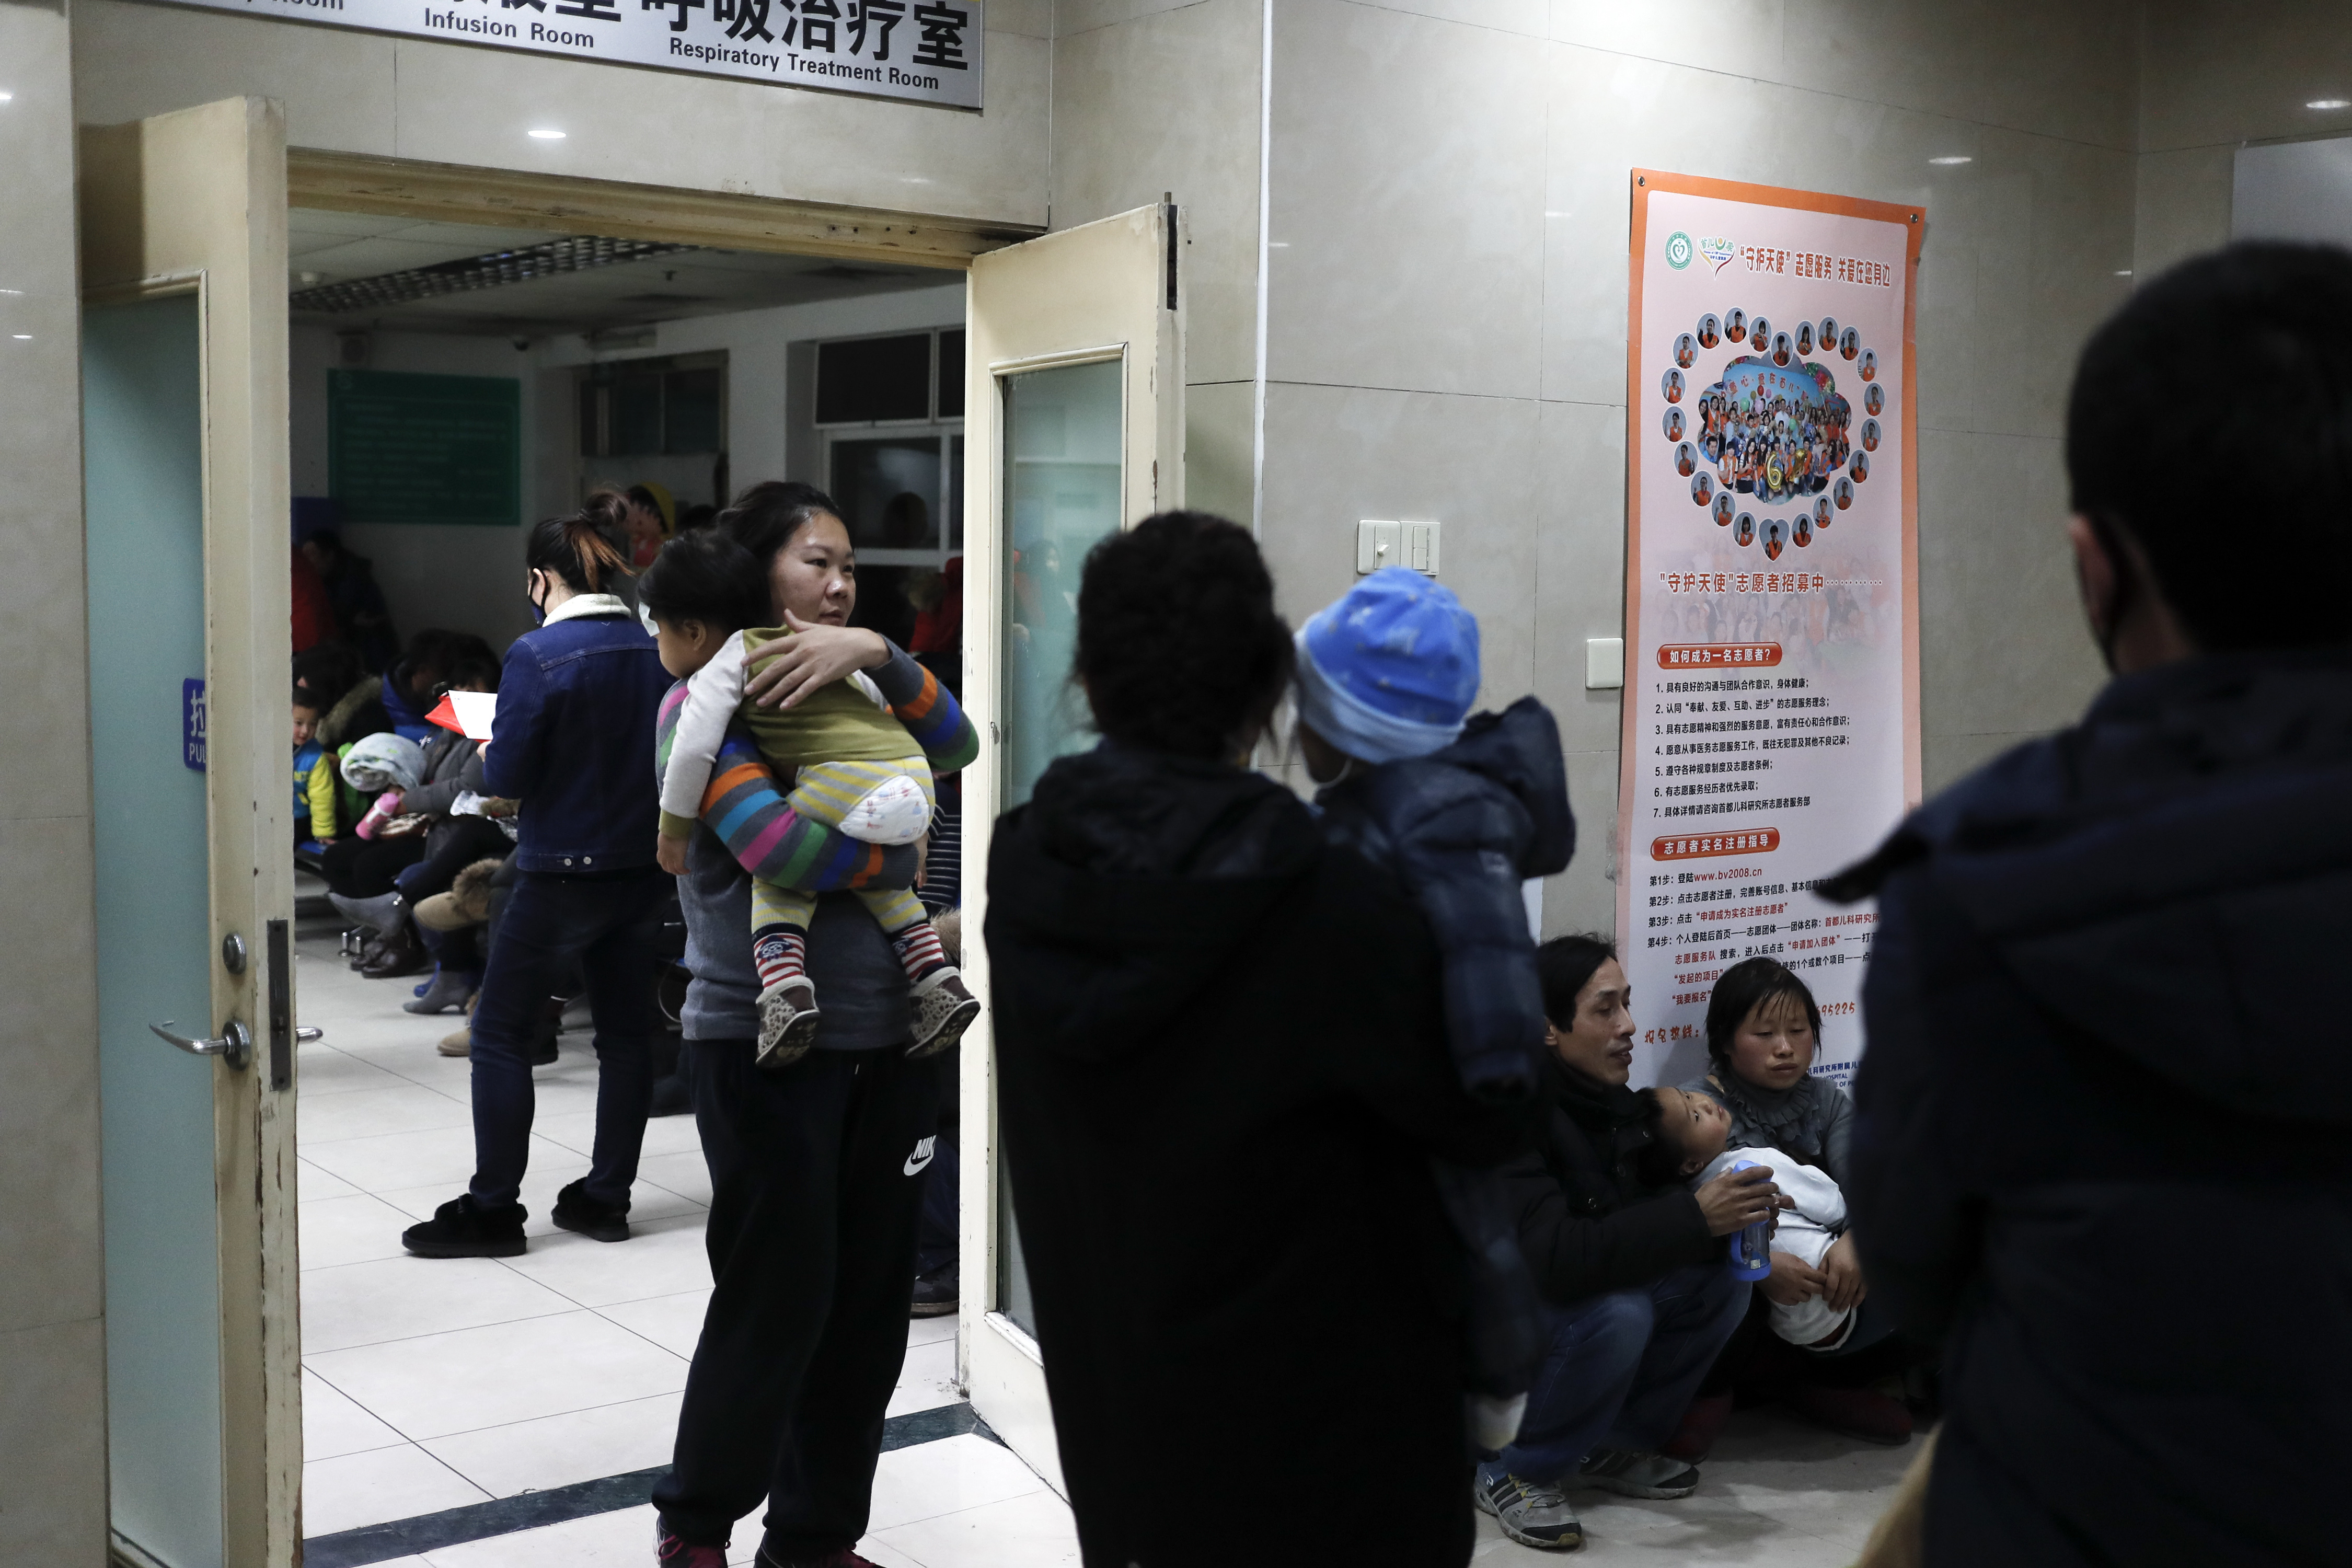 Parents carrying their children wait to see doctors at a children's hospital in Beijing on Dec. 18, 2016. (AP Photo/Andy Wong)